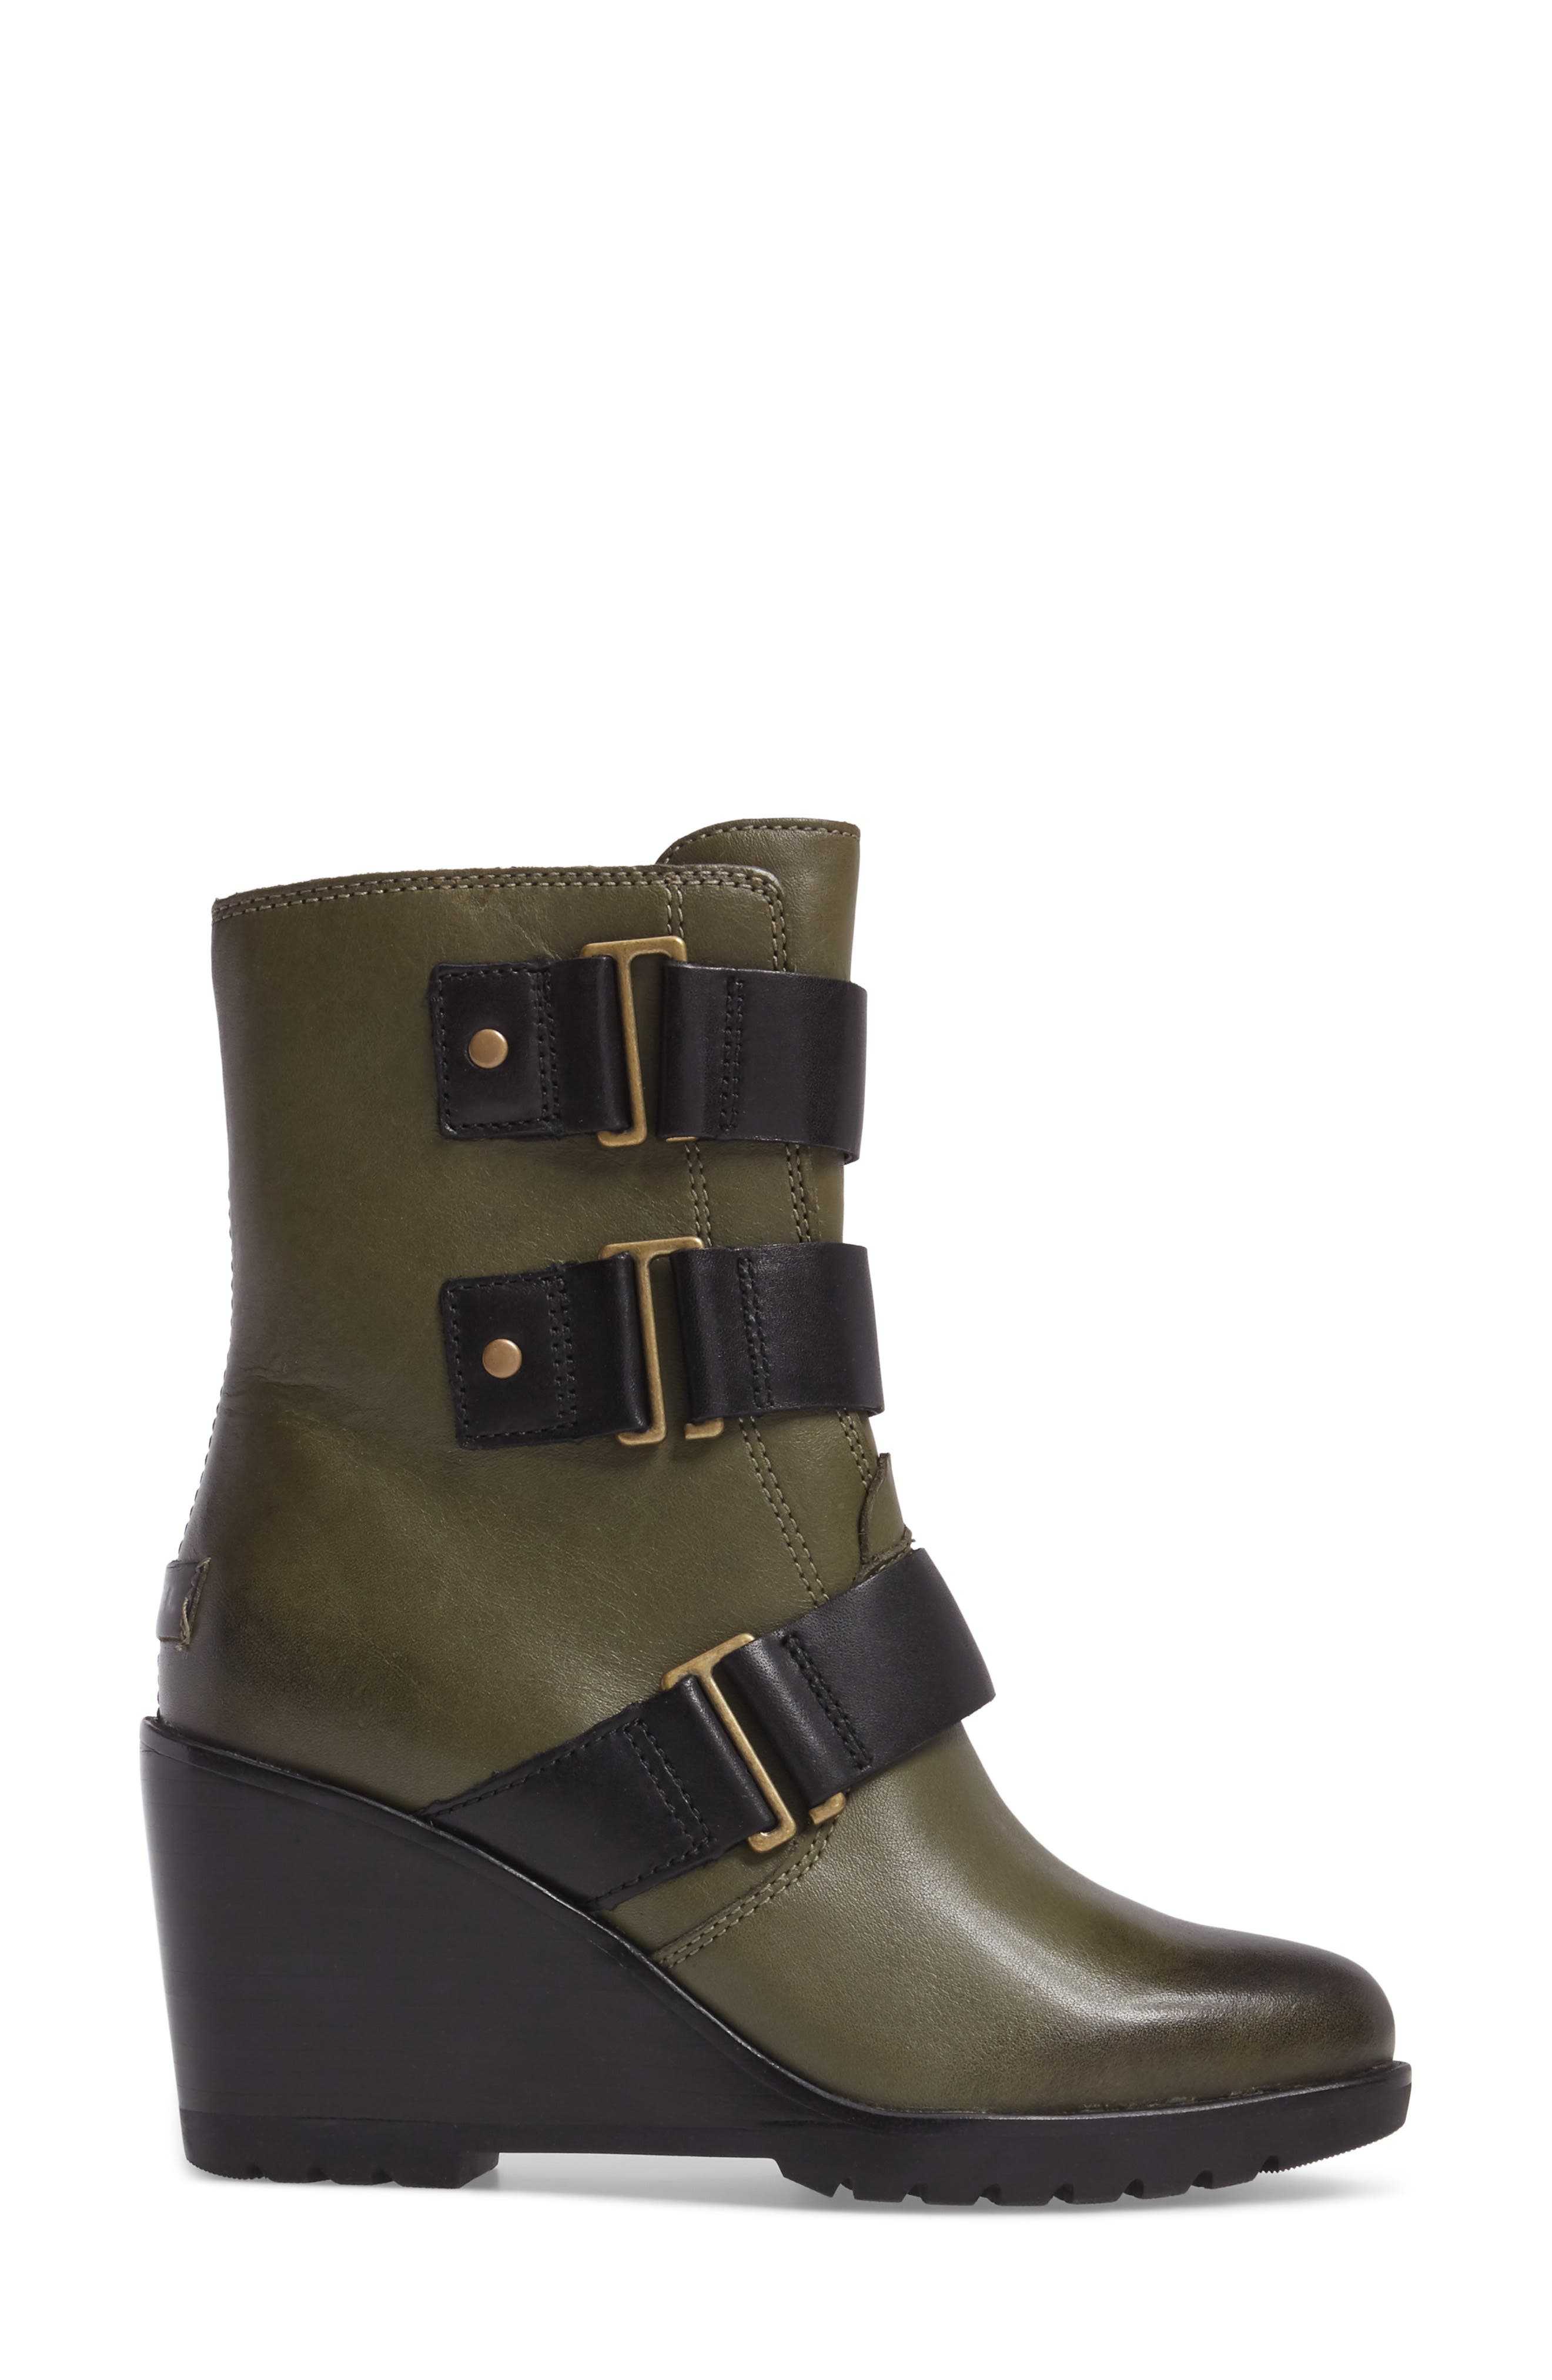 After Hours Waterproof Bootie,                             Alternate thumbnail 9, color,